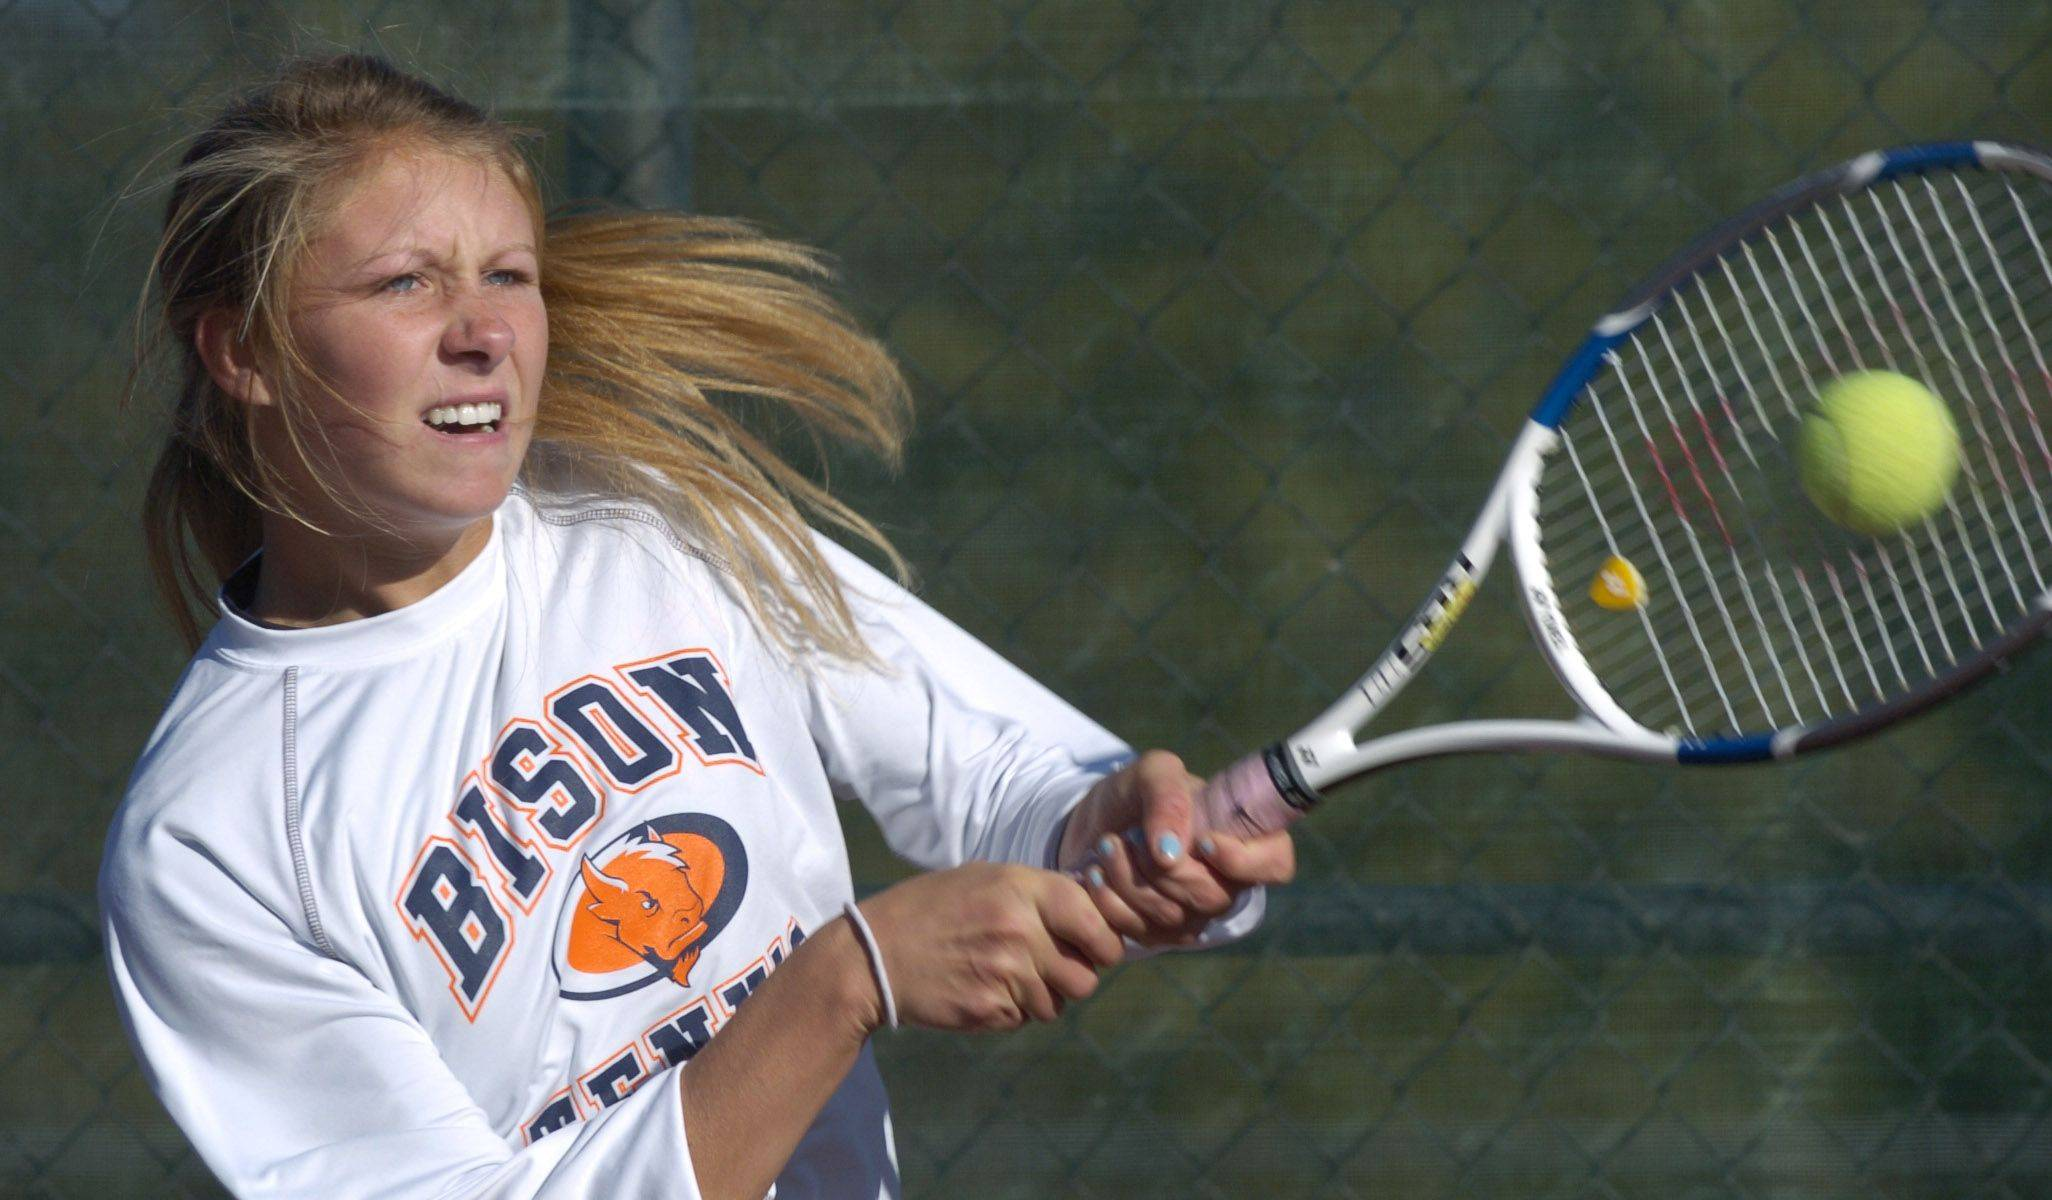 Buffalo Grove's Nell Boyd returns a volley during the state girls tennis tournament at Buffalo Grove High School Thursday.